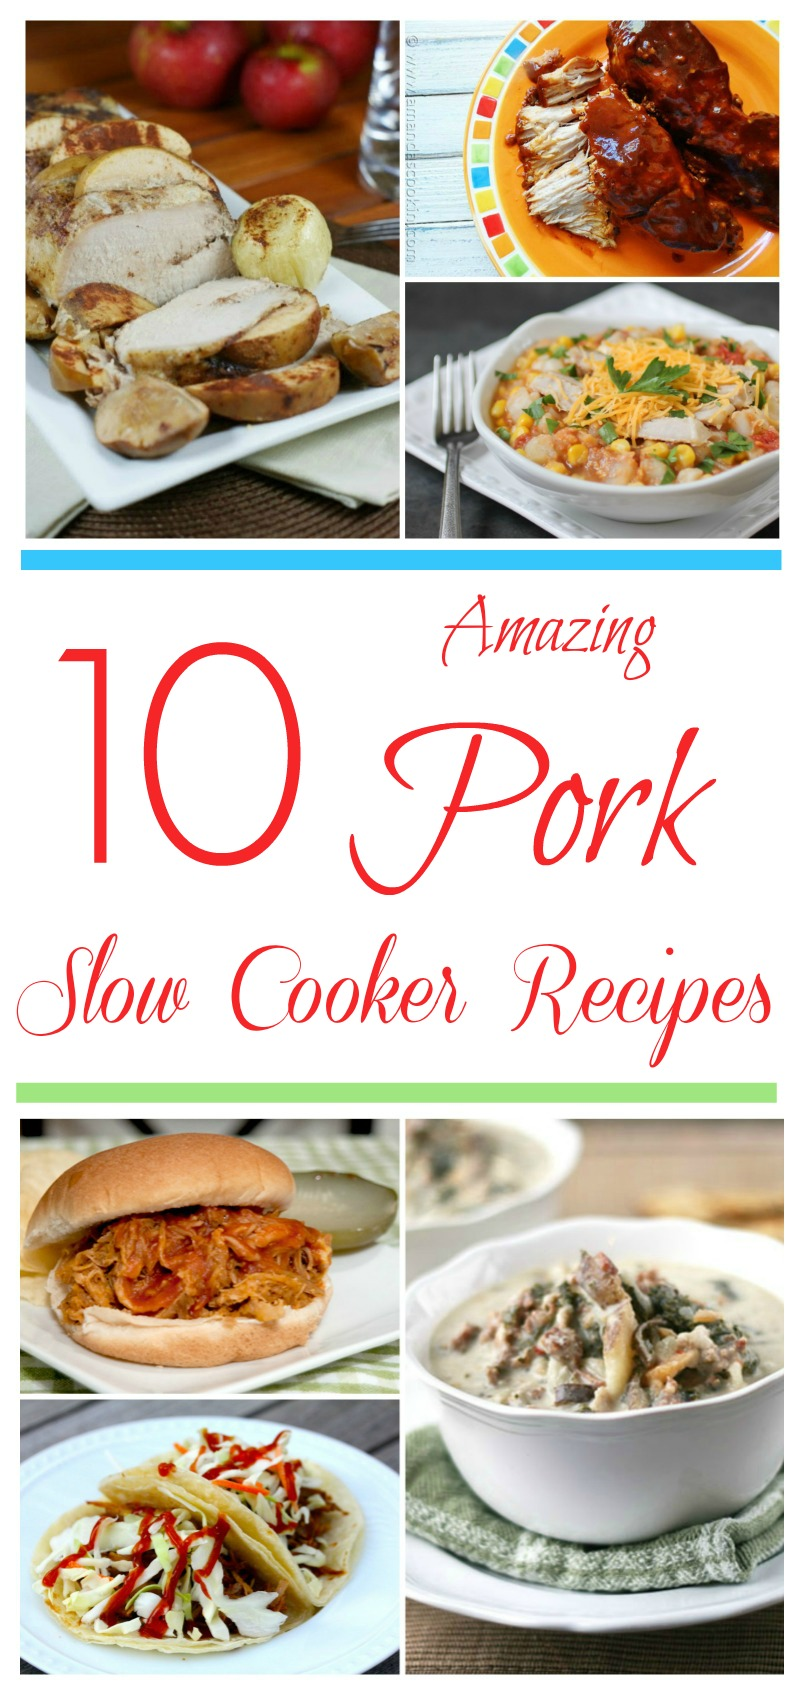 Looking for delicious pork recipes for your slow cooker? Check out these 10 Amazing Pork Slow Cooker Recipes that are perfect for any family!